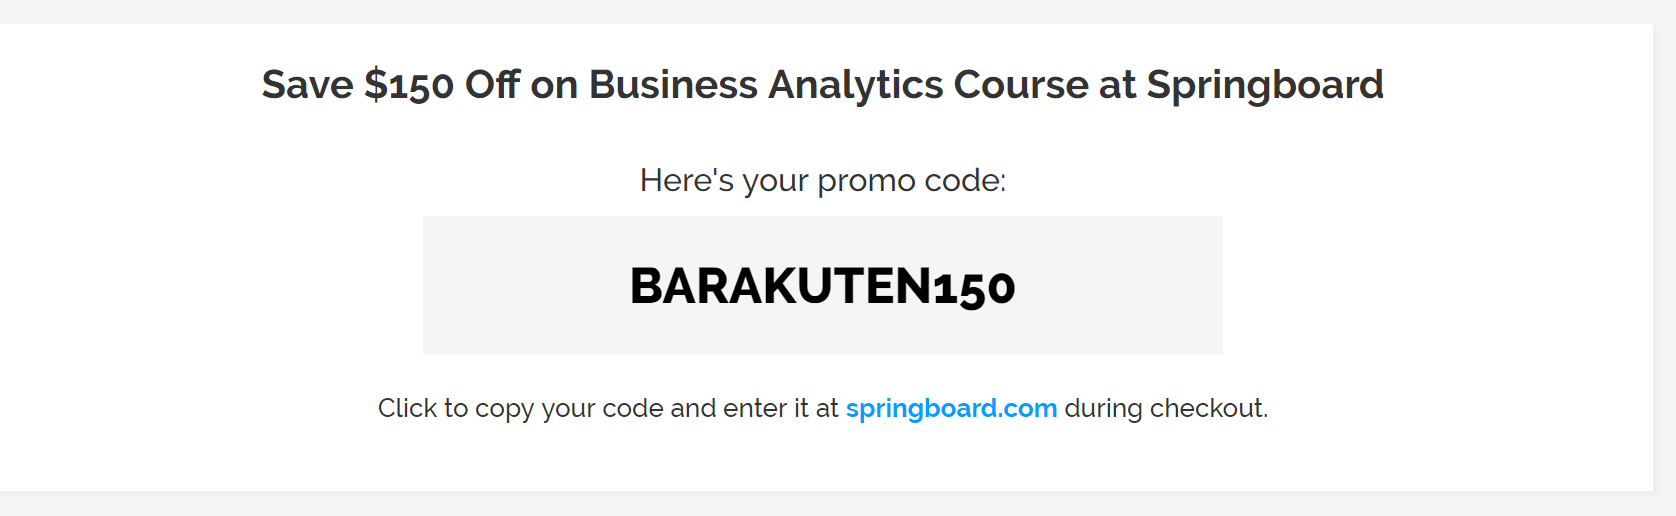 Springboard courses discount coupon codes